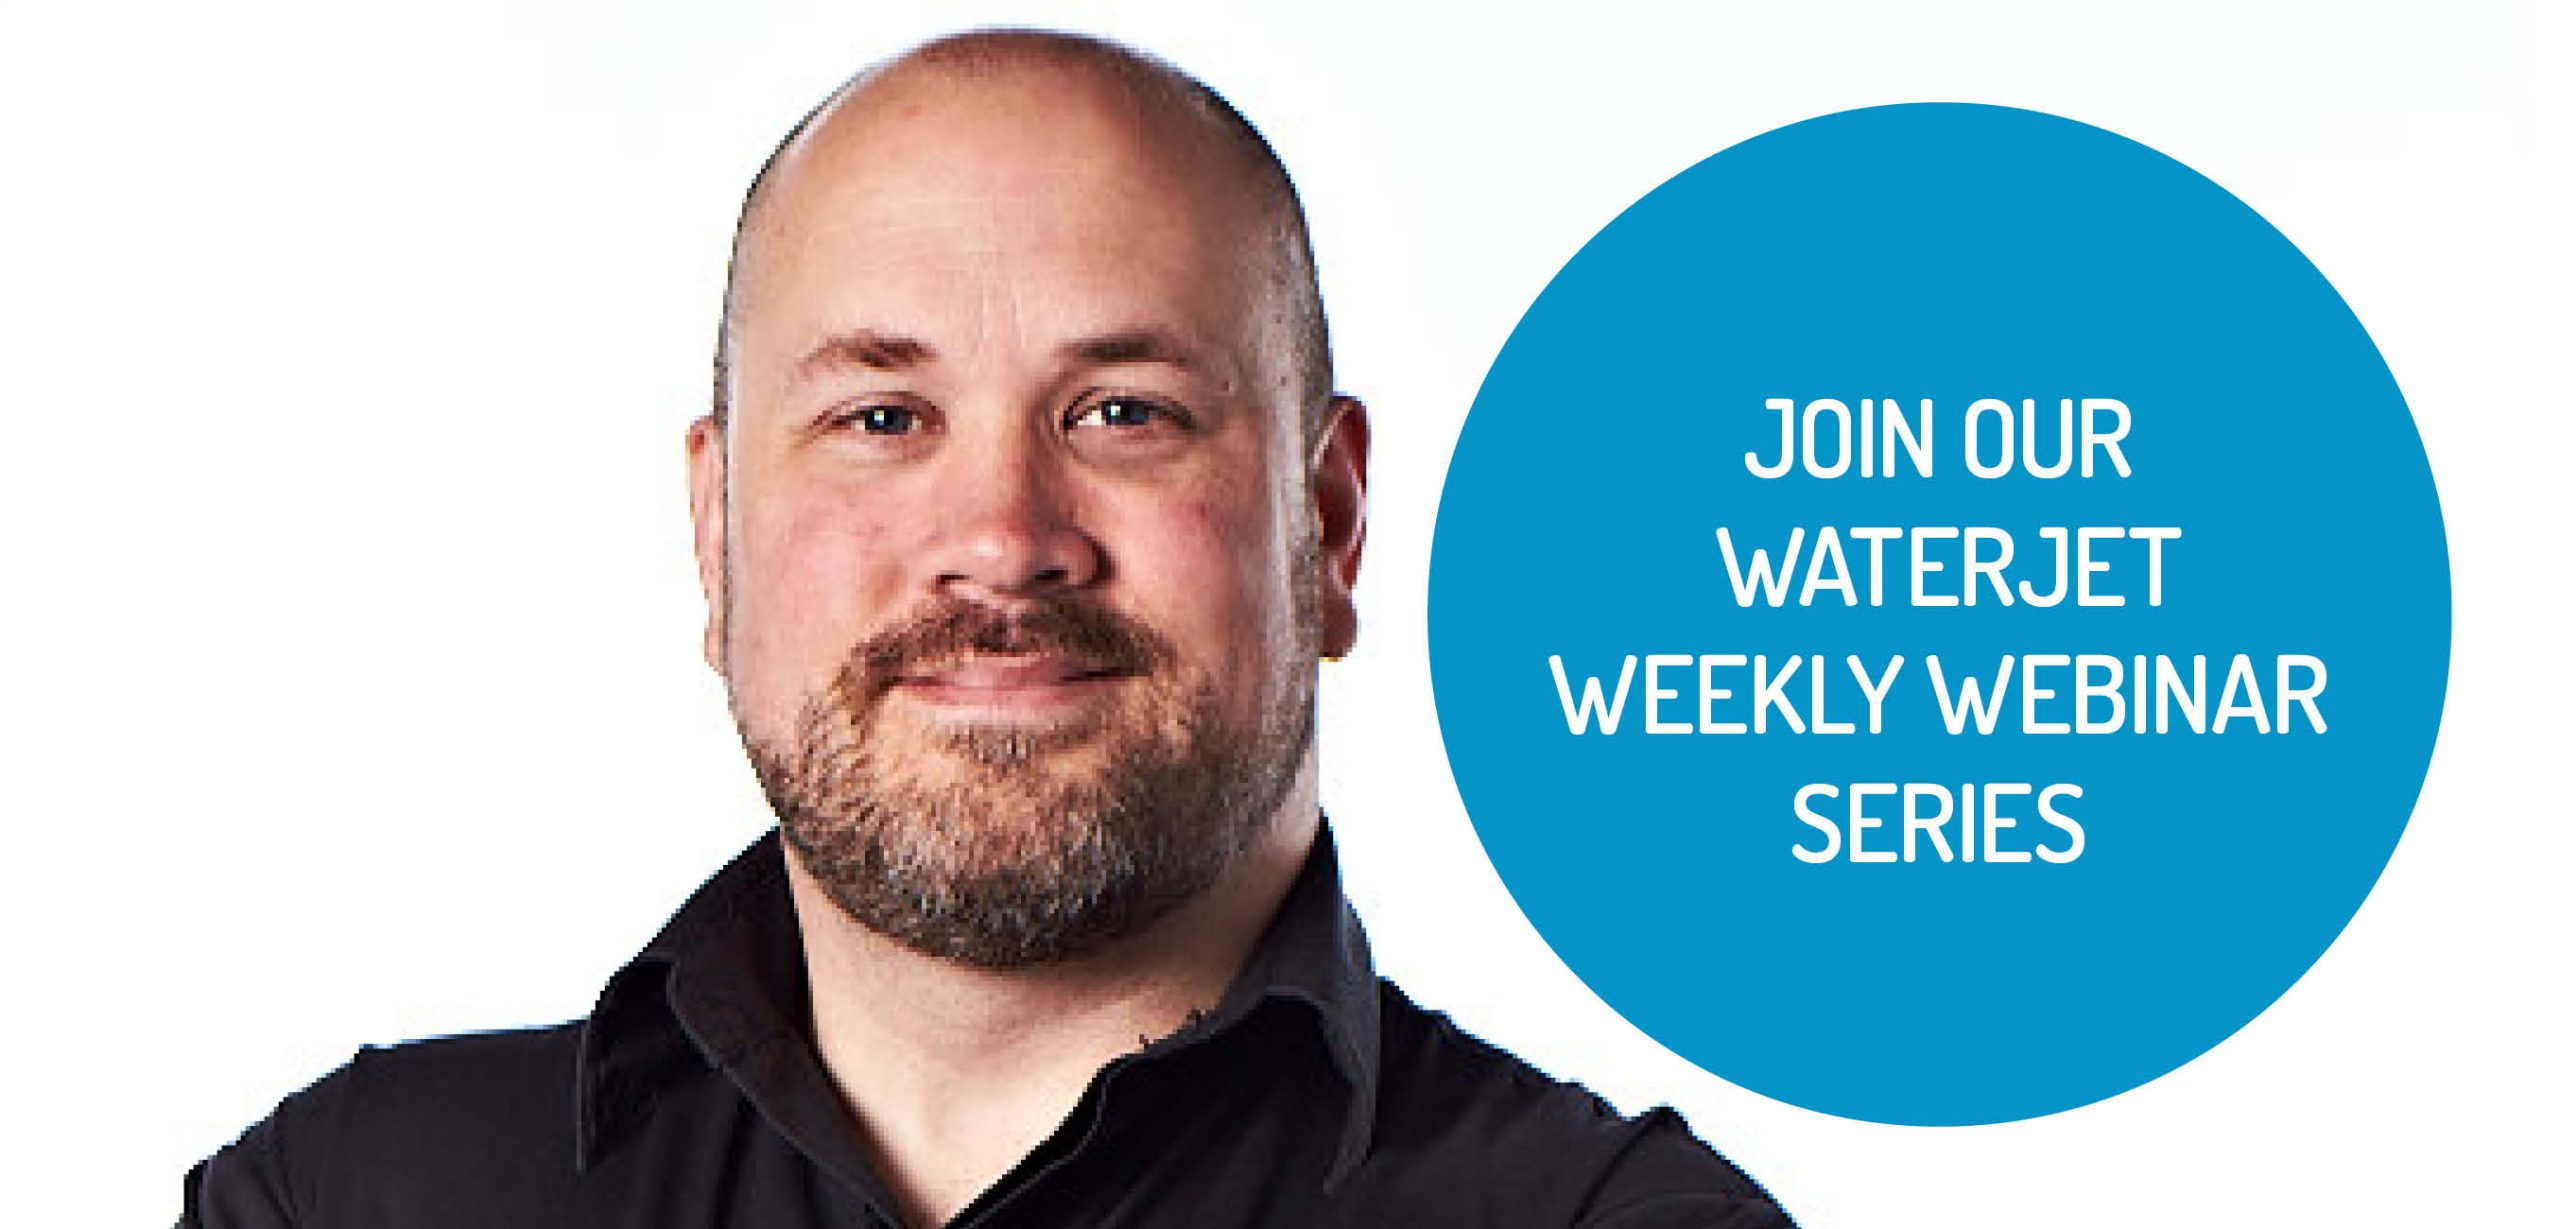 Waterjet Weekly Webinar Series